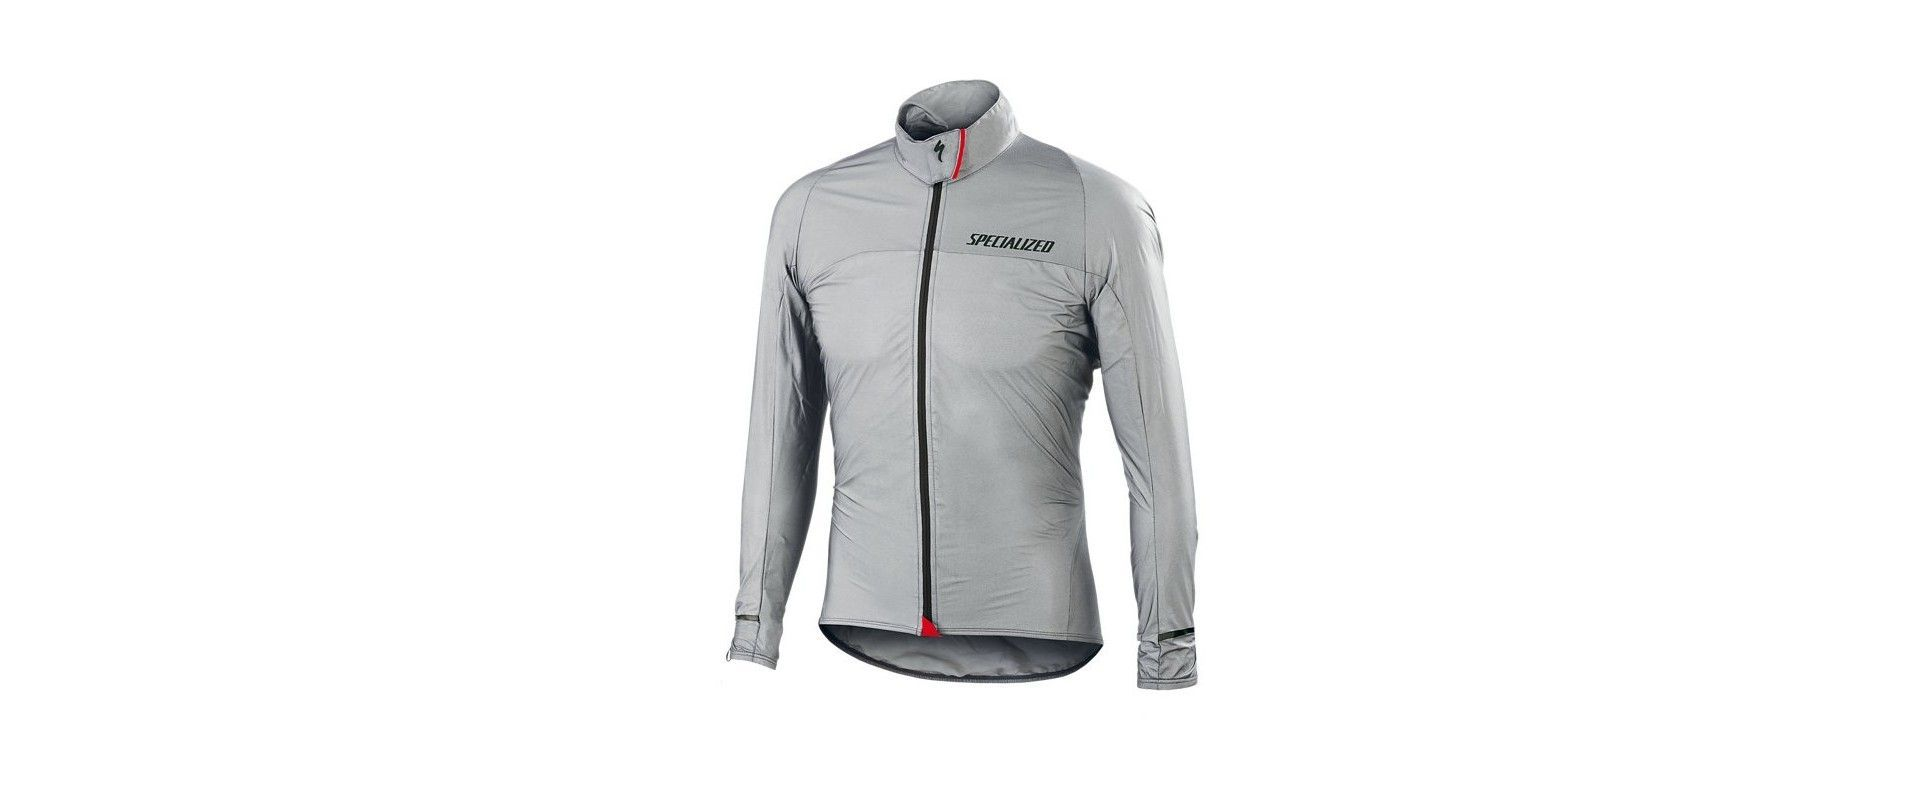 ♥ Cycling Clothing ♥ Specialized Concept Store Bicycle Store and Components